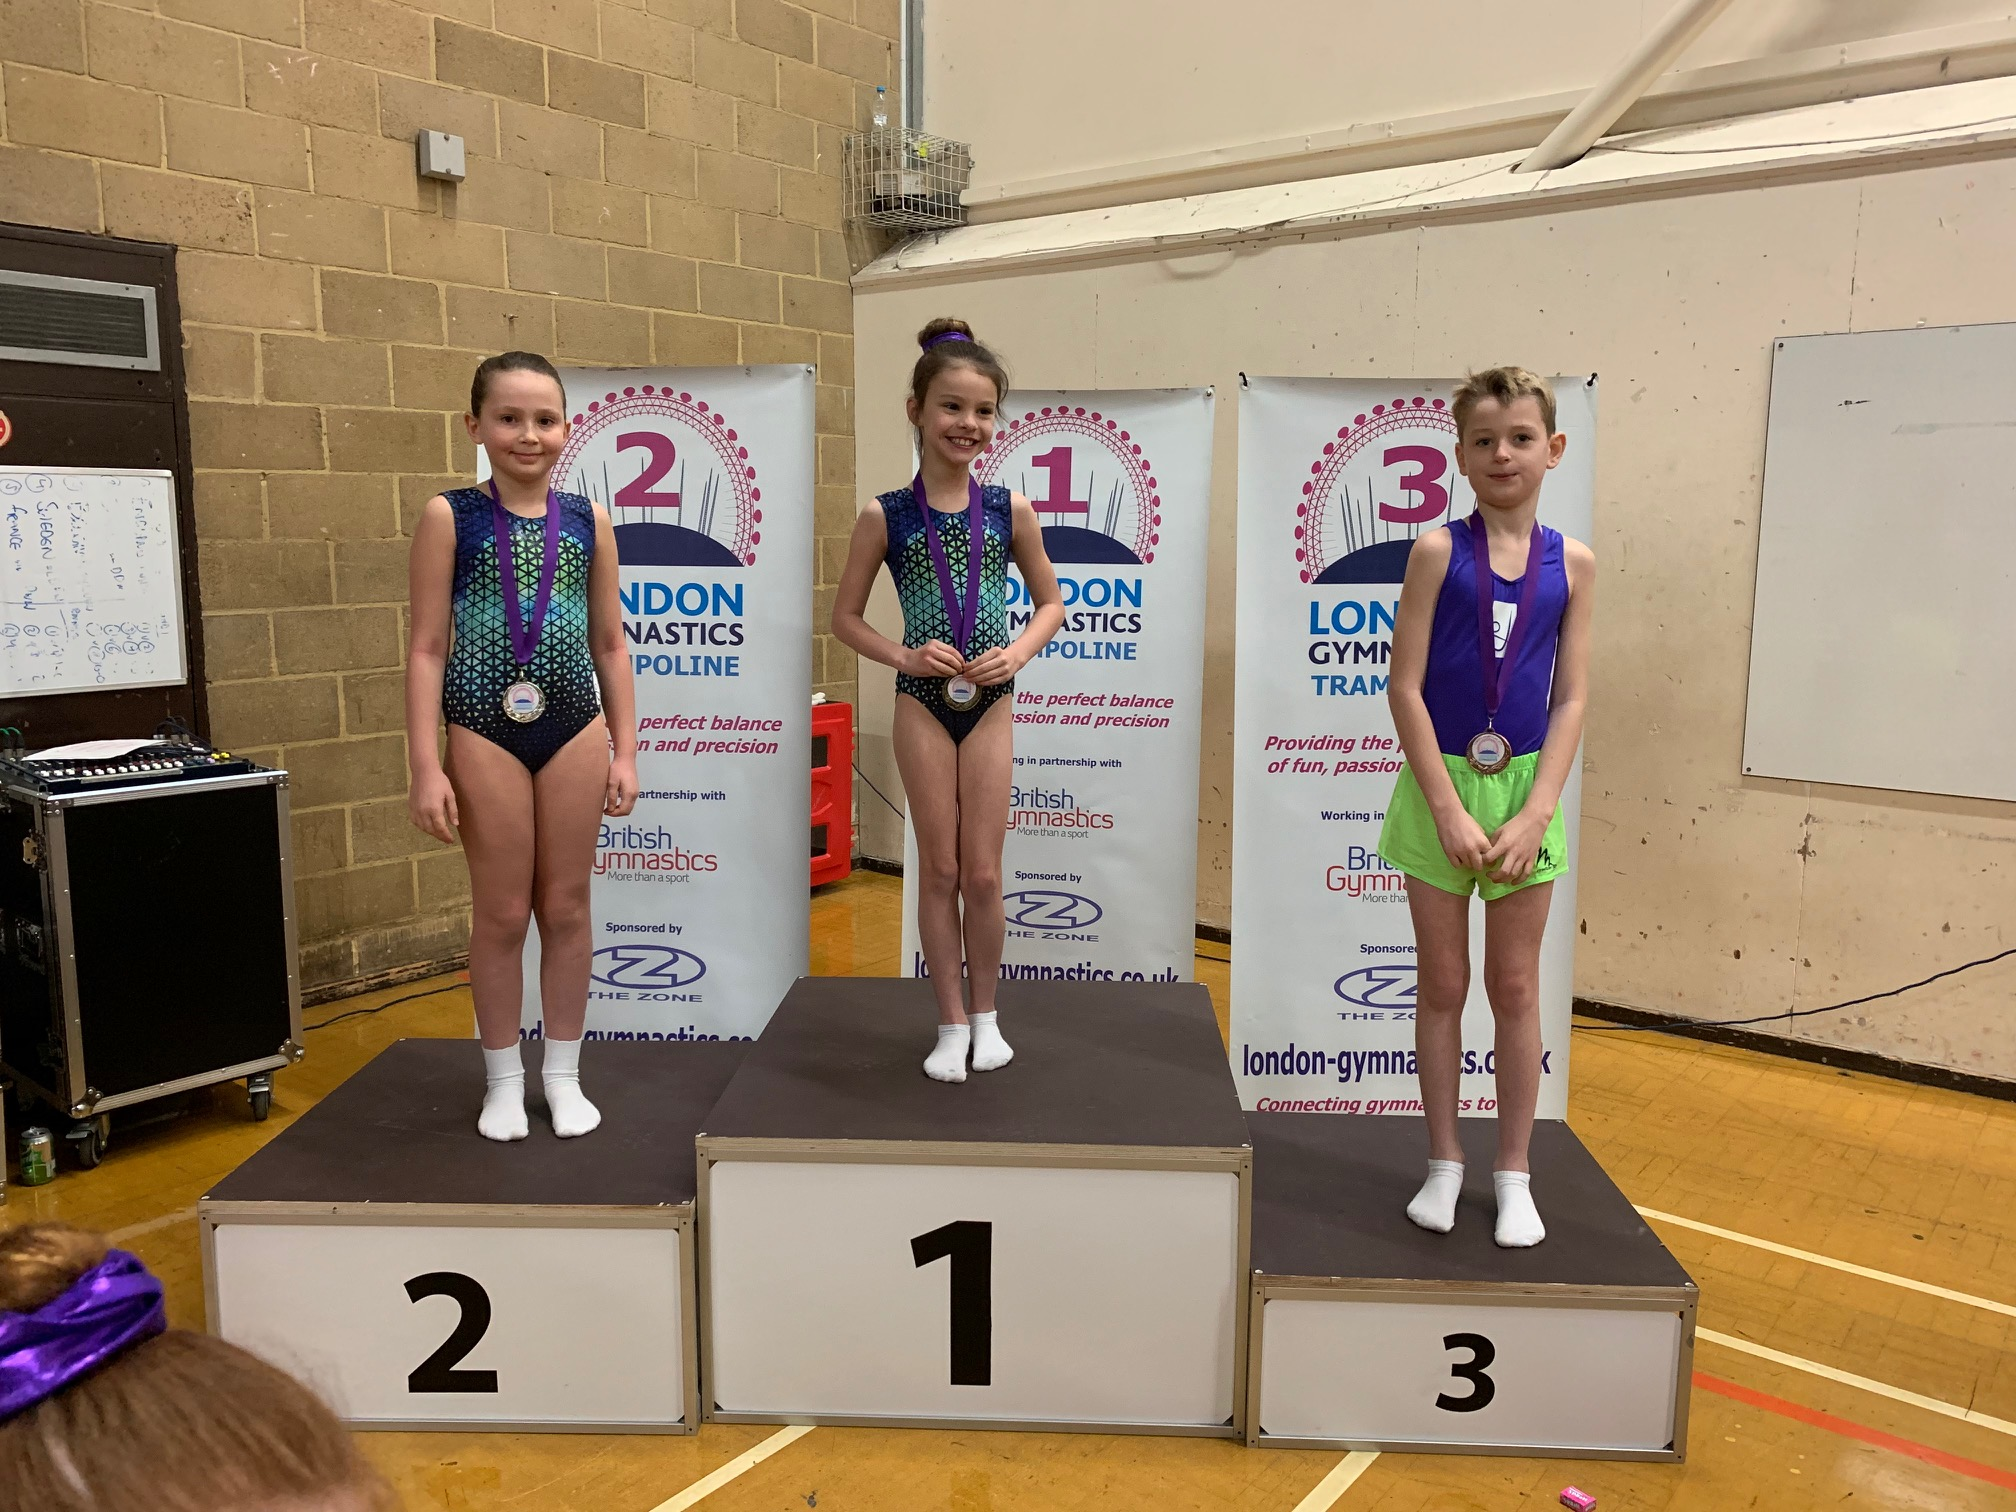 3 young trampoline gymnasts stand on a prize giving podium